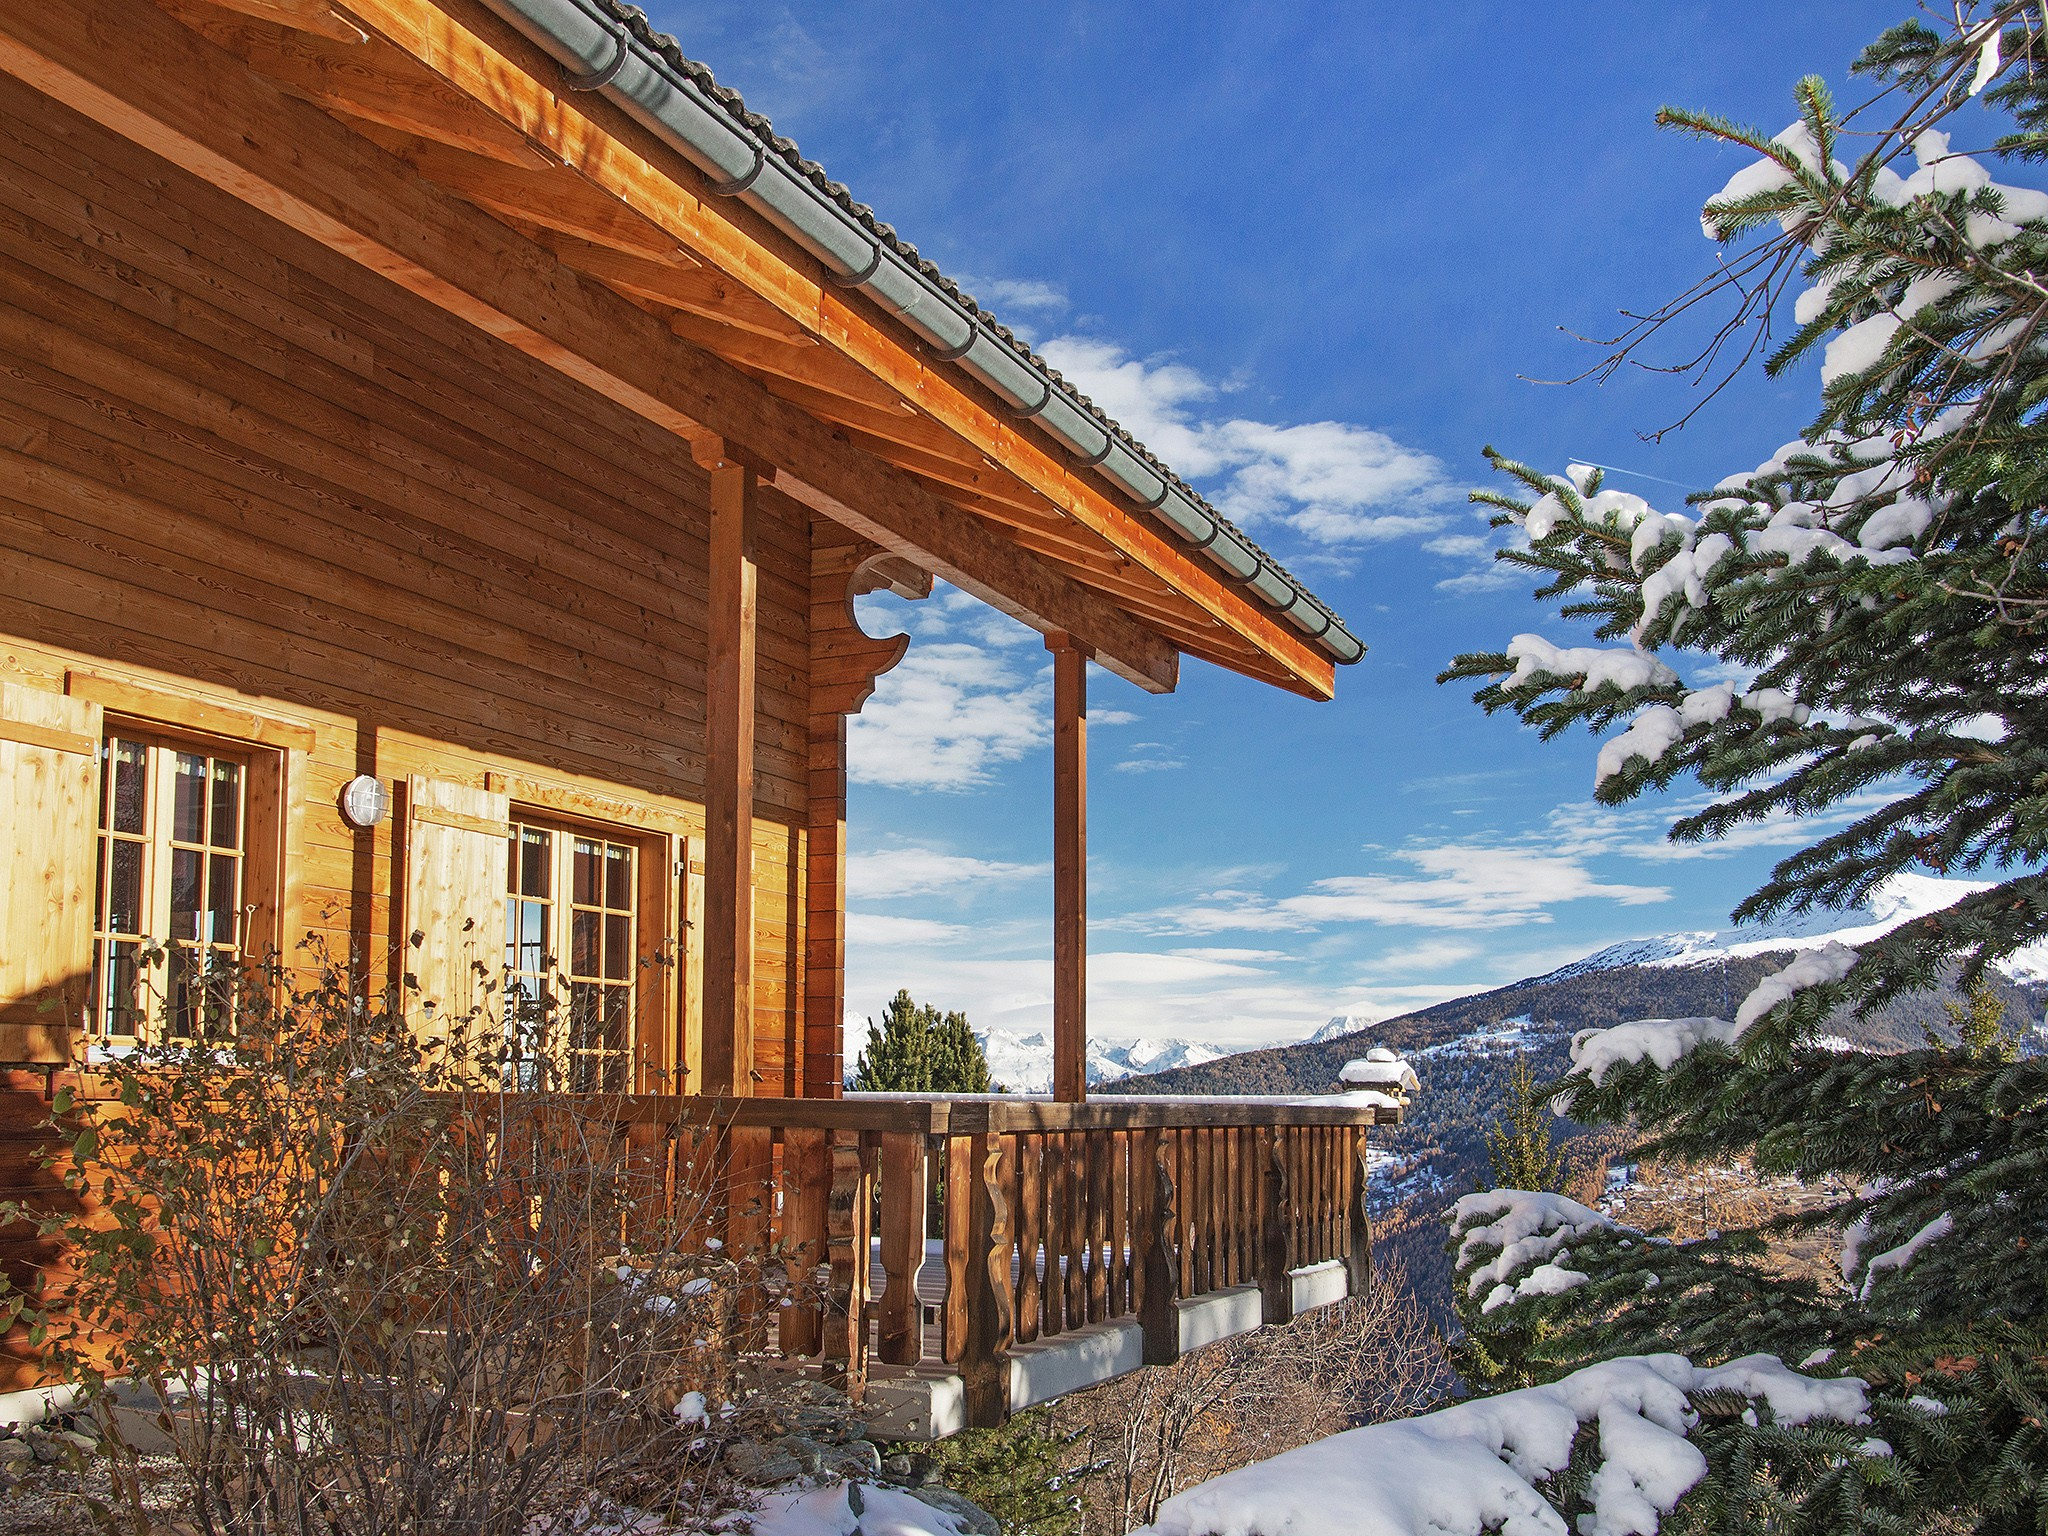 Chalet Albert - panoramic view